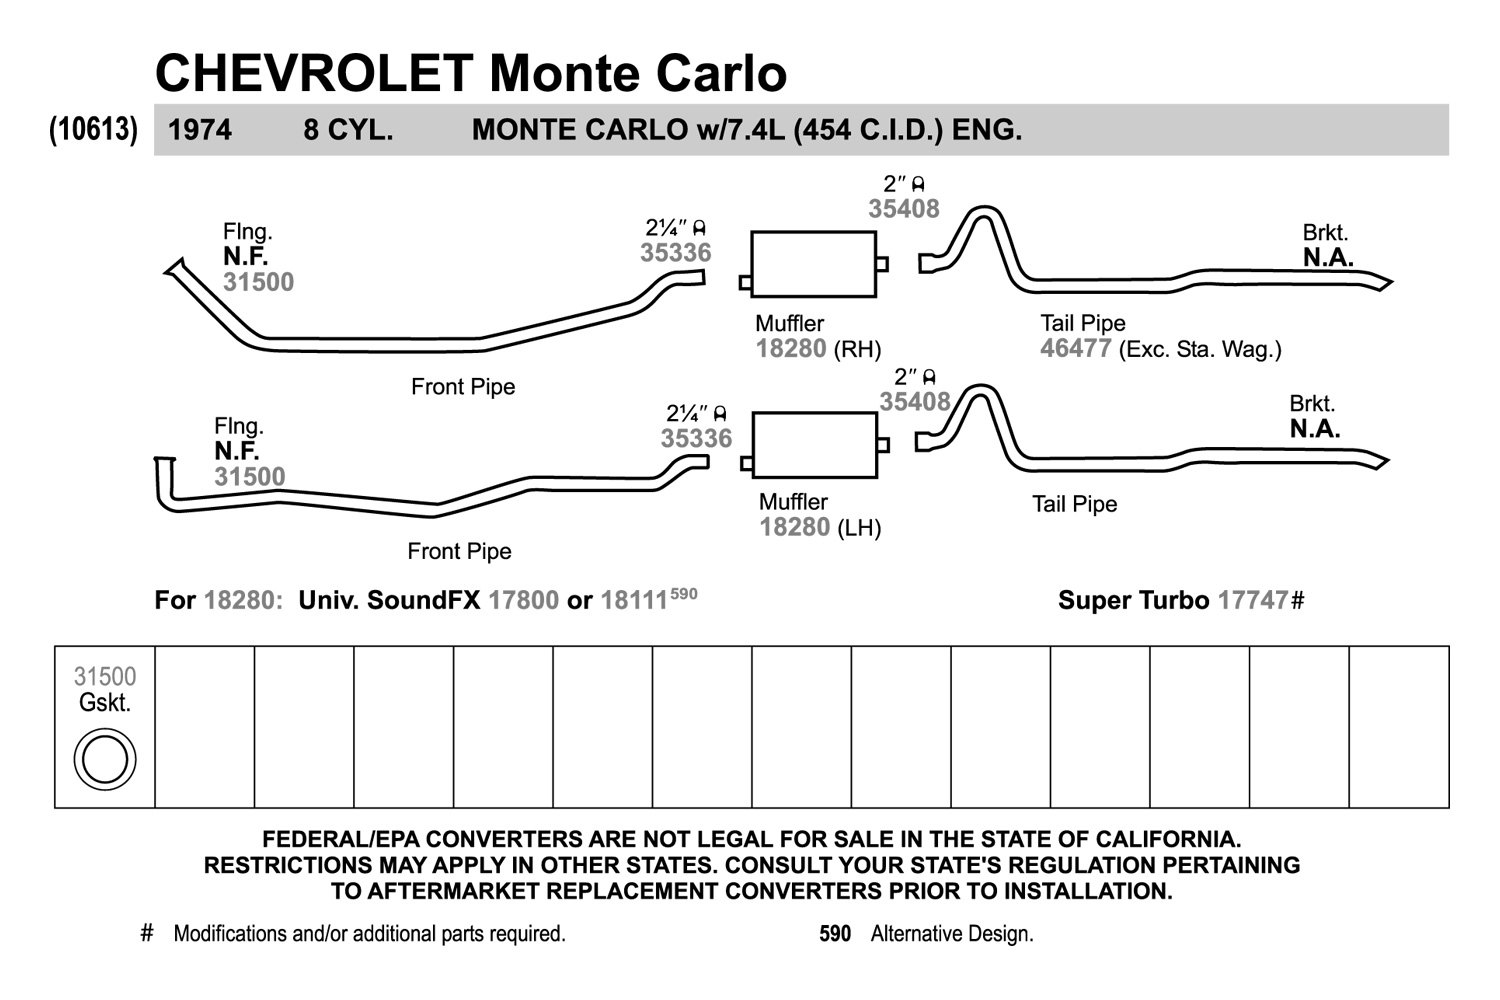 1984 Monte Carlo Ss Wiring Diagram Free For You 350c 36